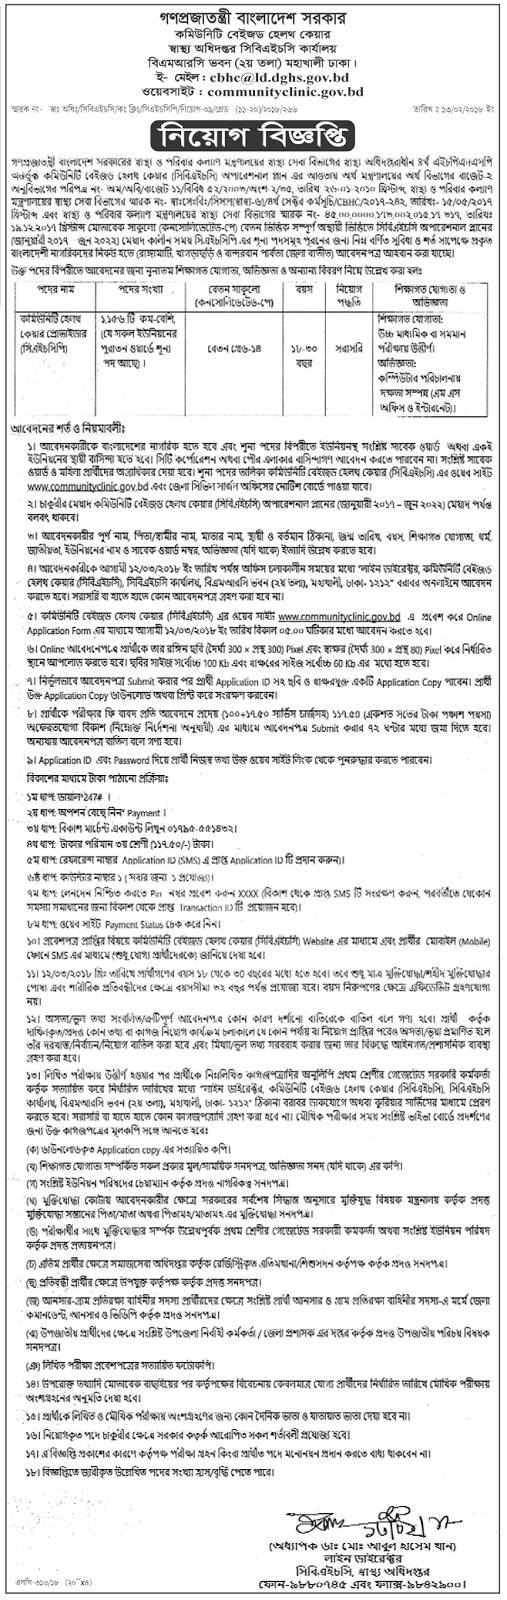 CHCP - Community Health Care Provider Job Circular 2018